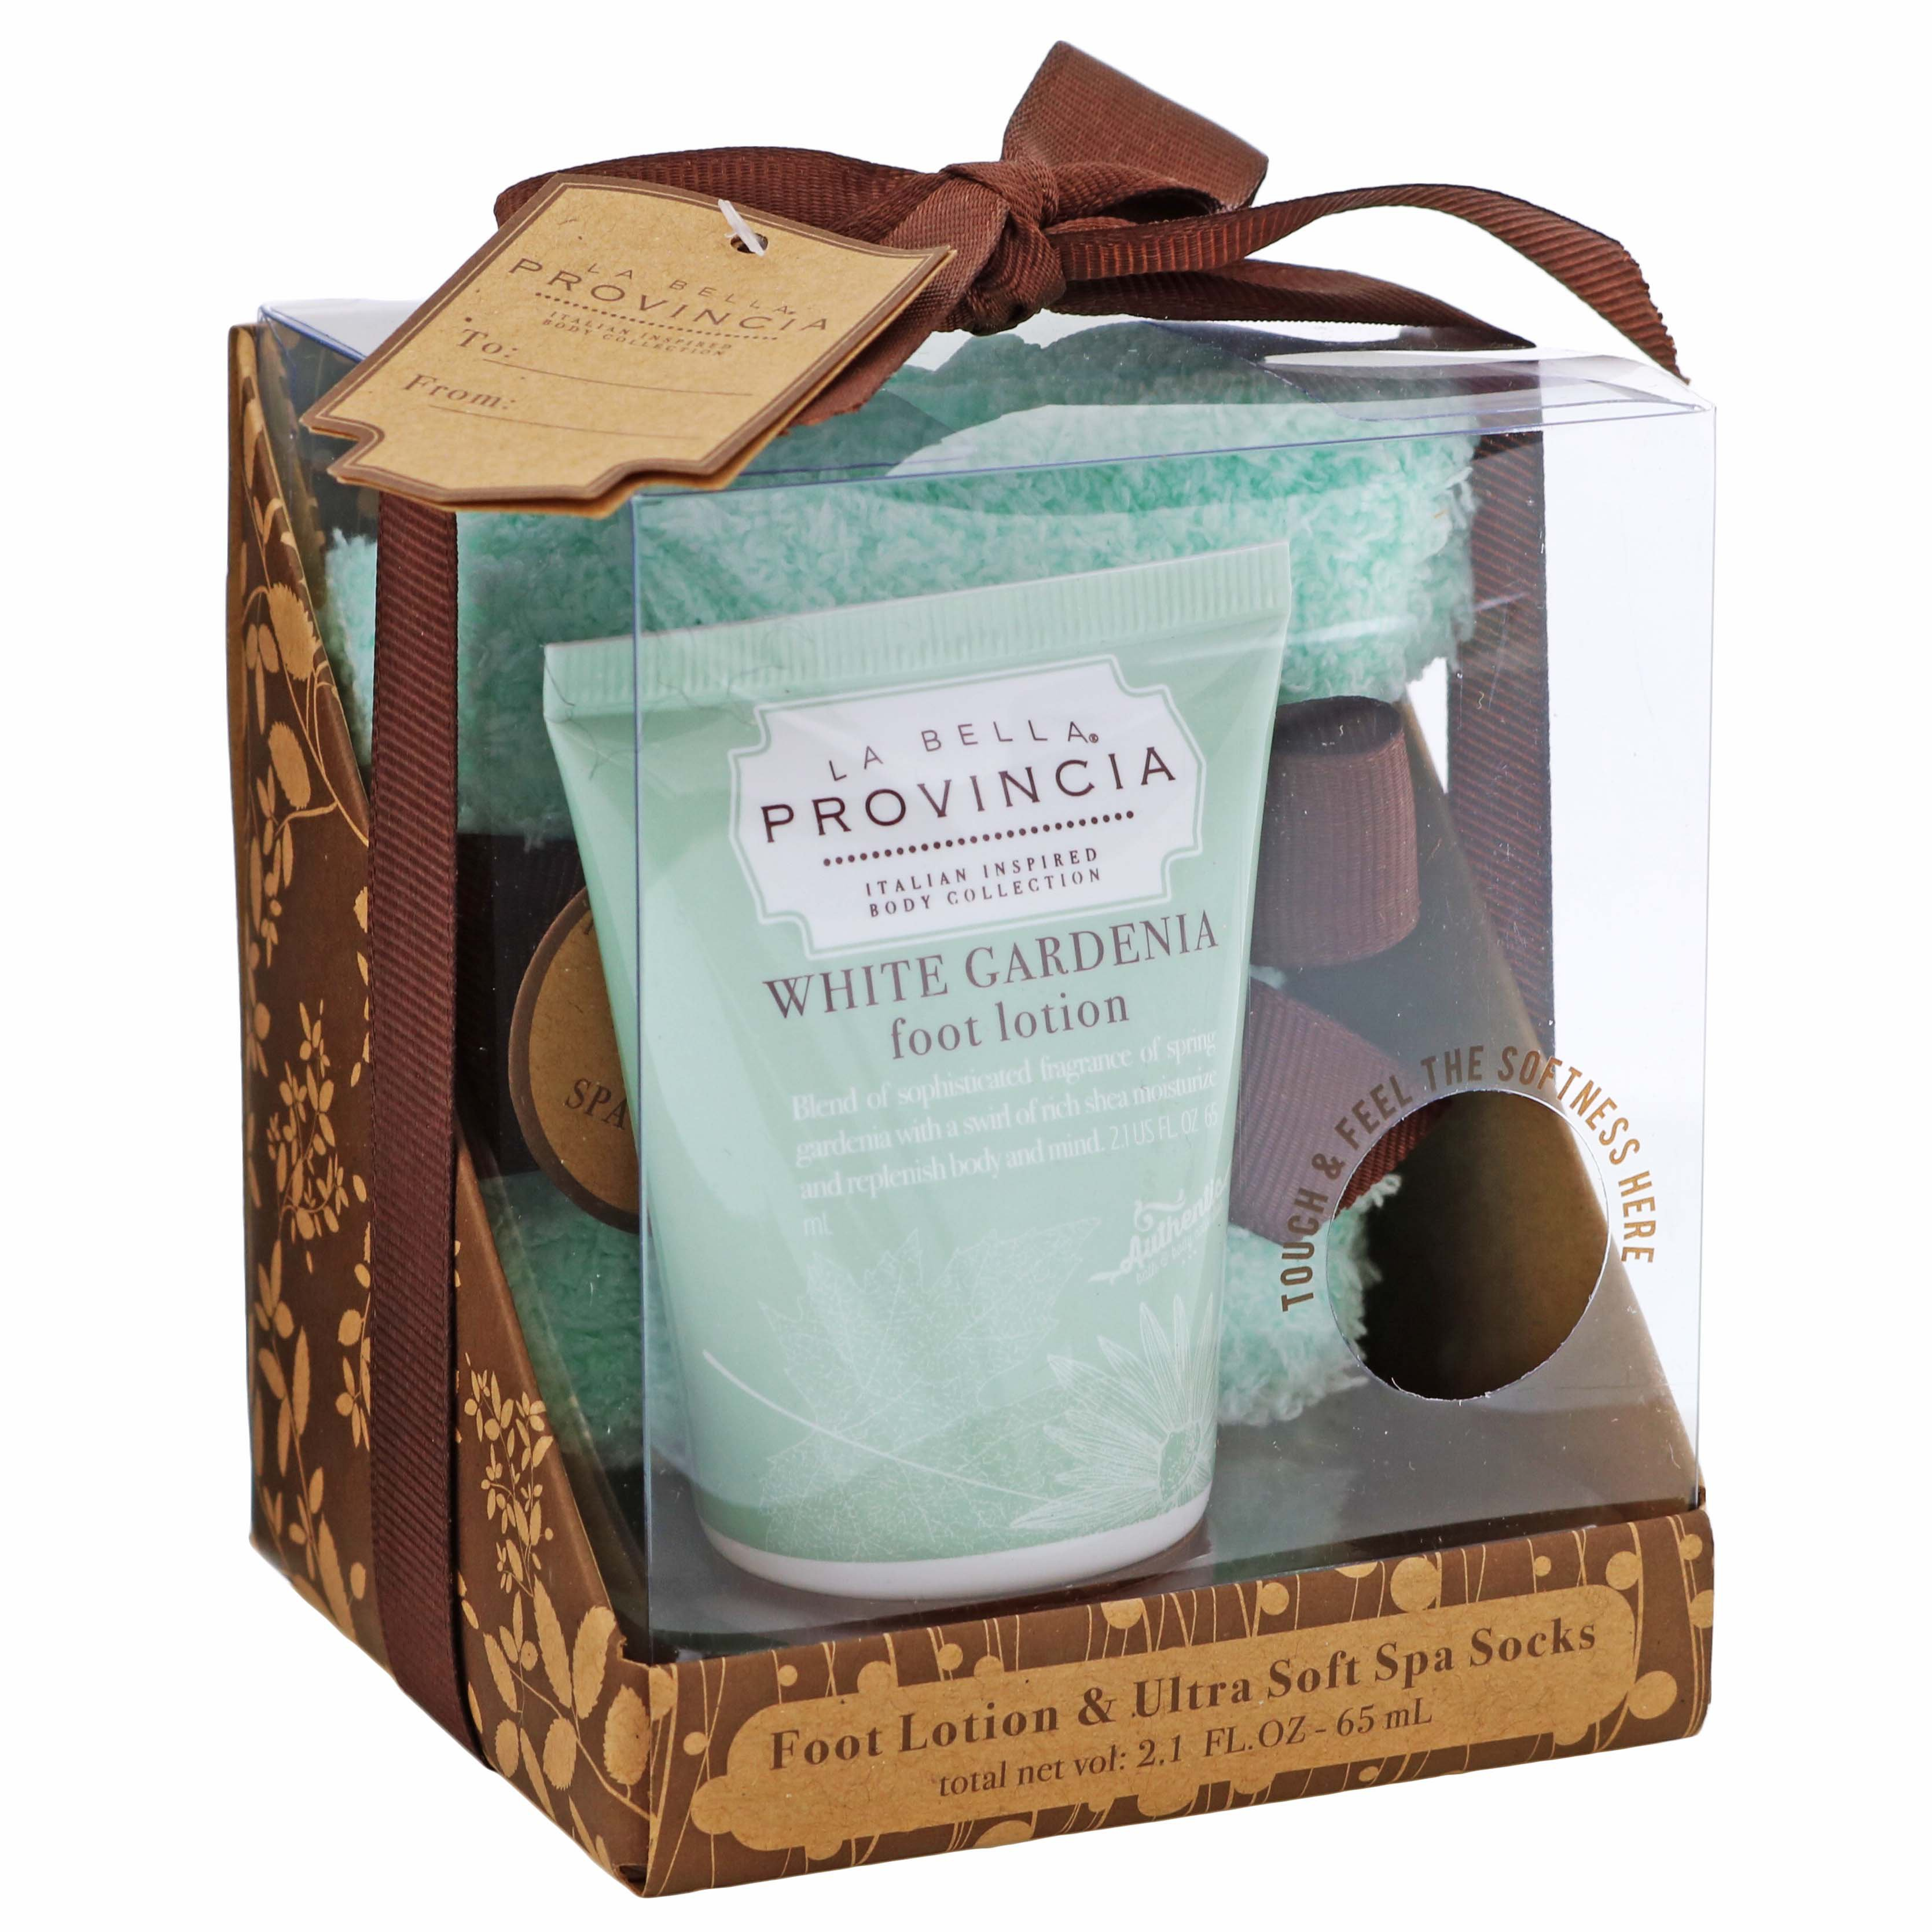 Gift sets shop heb everyday low prices online la bella provincia spa sock set negle Gallery